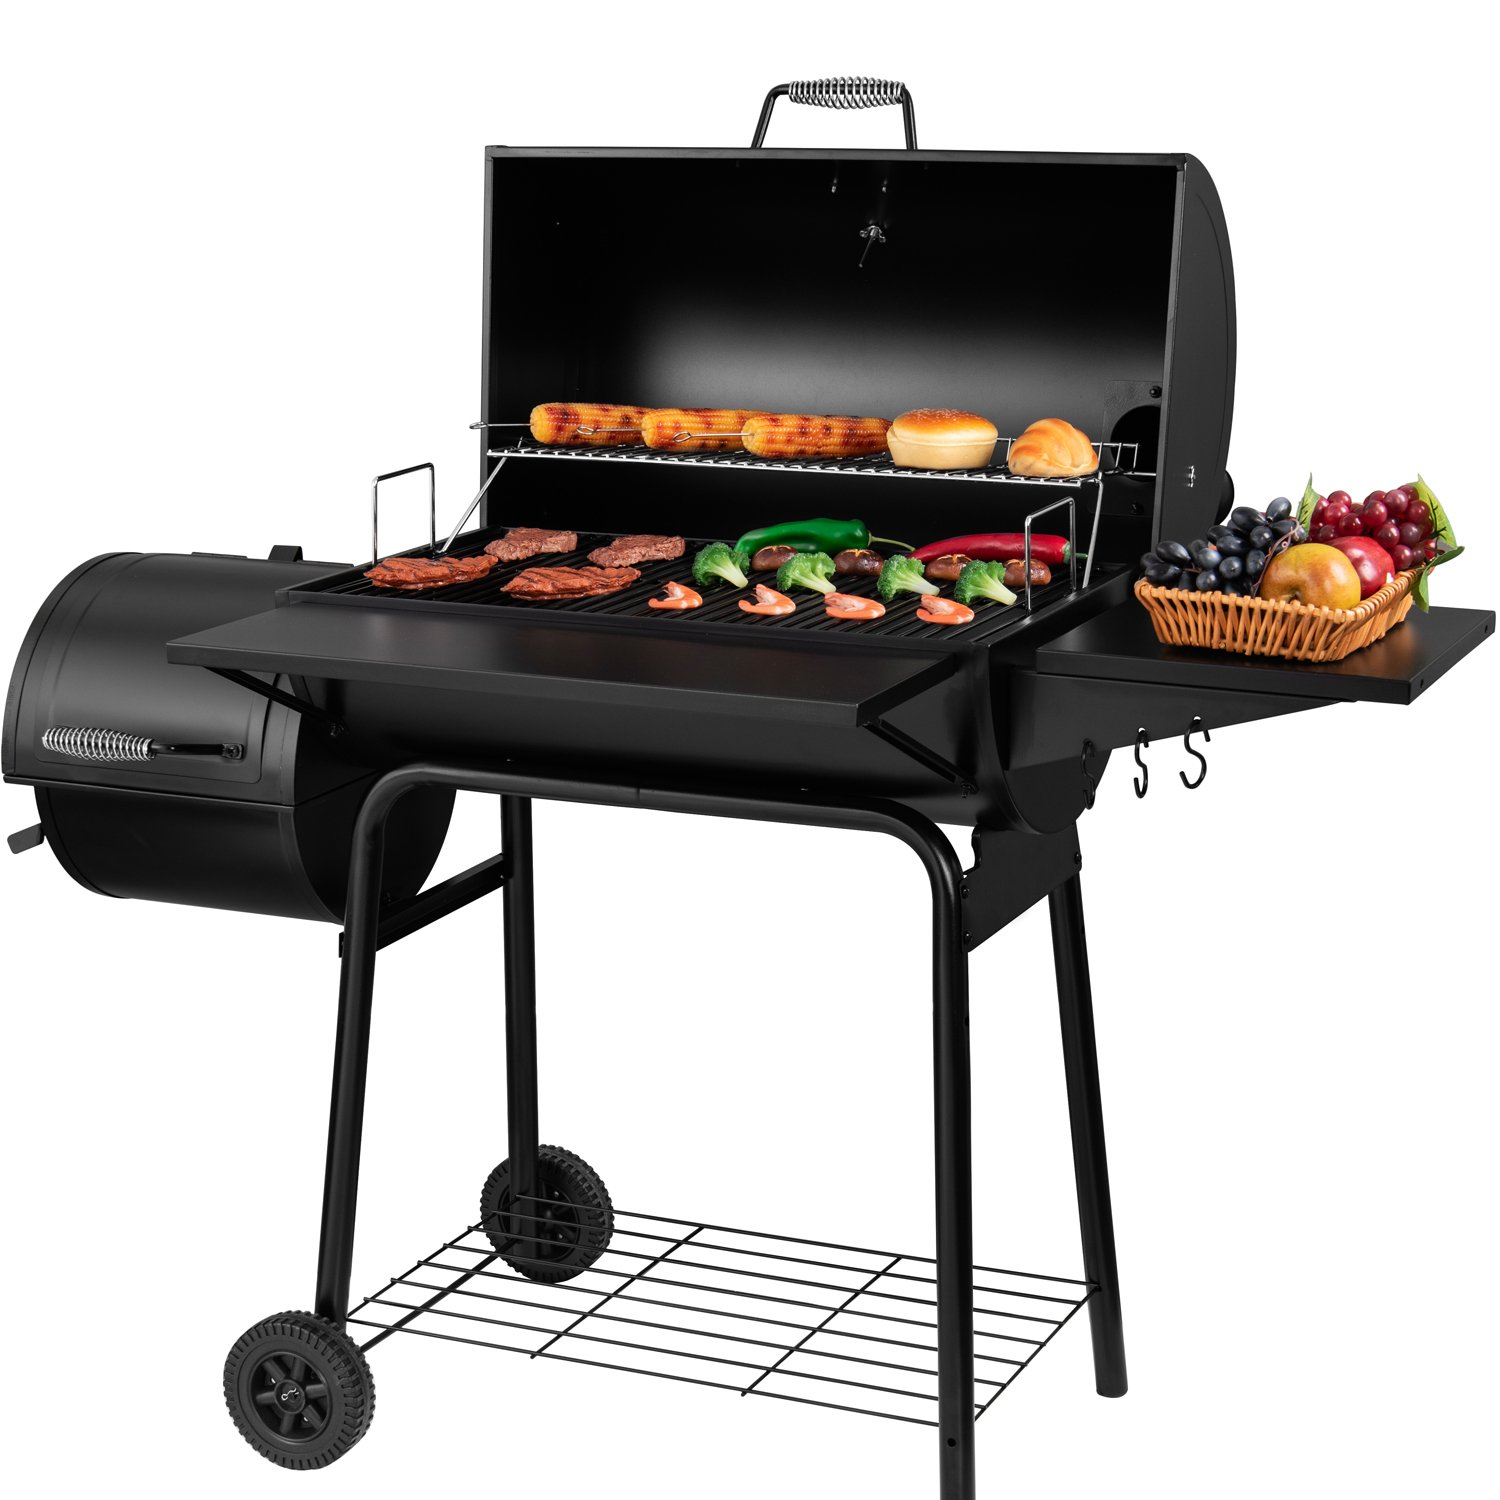 Royal Gourmet BBQ Charcoal Grill and Offset Smoker, 30'' L, 800 Square Inch, Outdoor for Camping, Black by Royal Gourmet (Image #2)